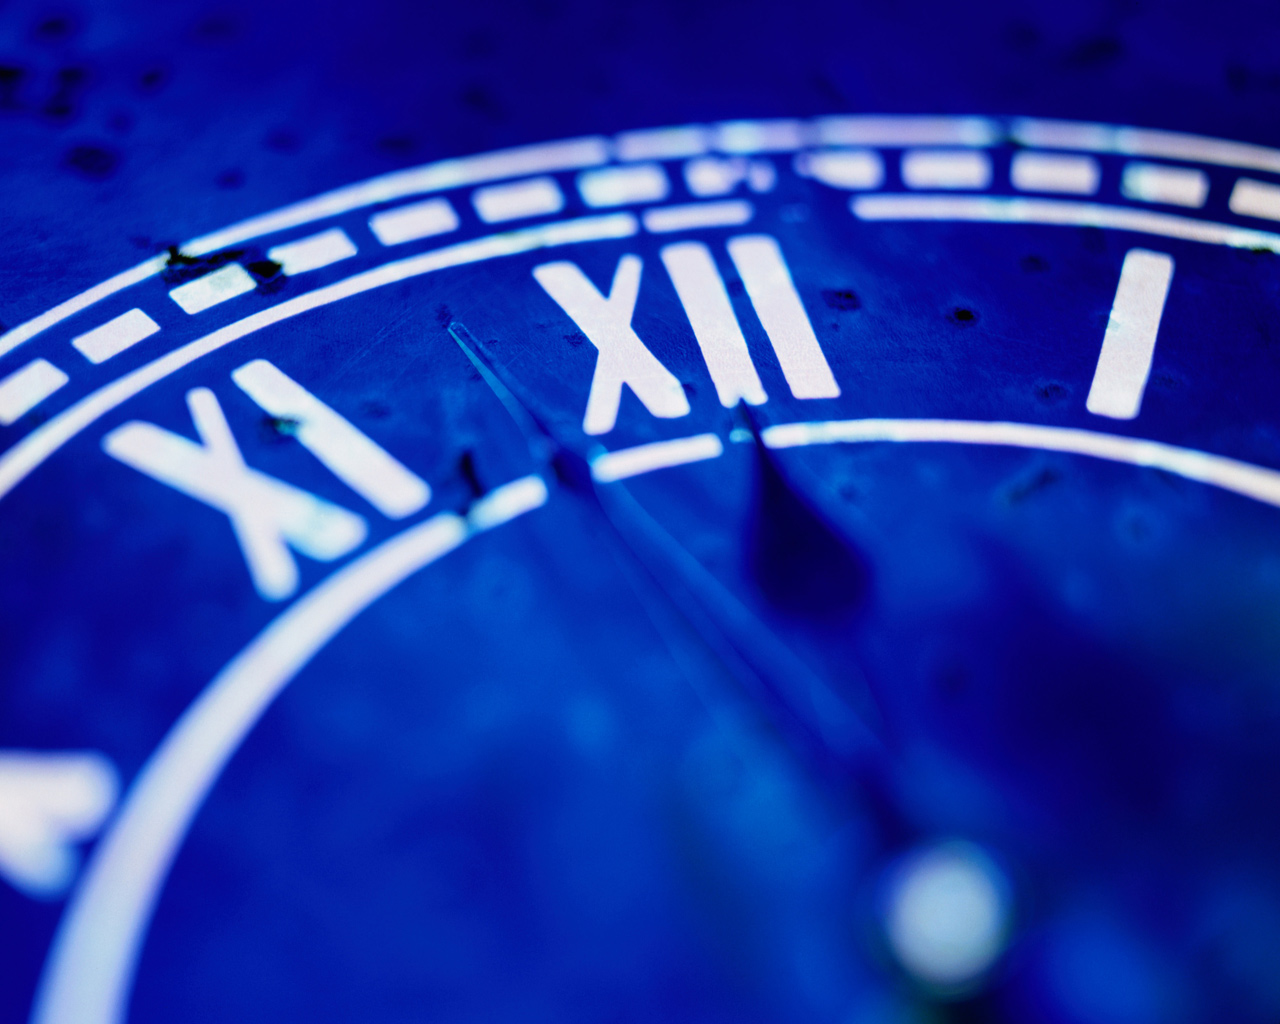 Blue Clock | Download This Wallpaper